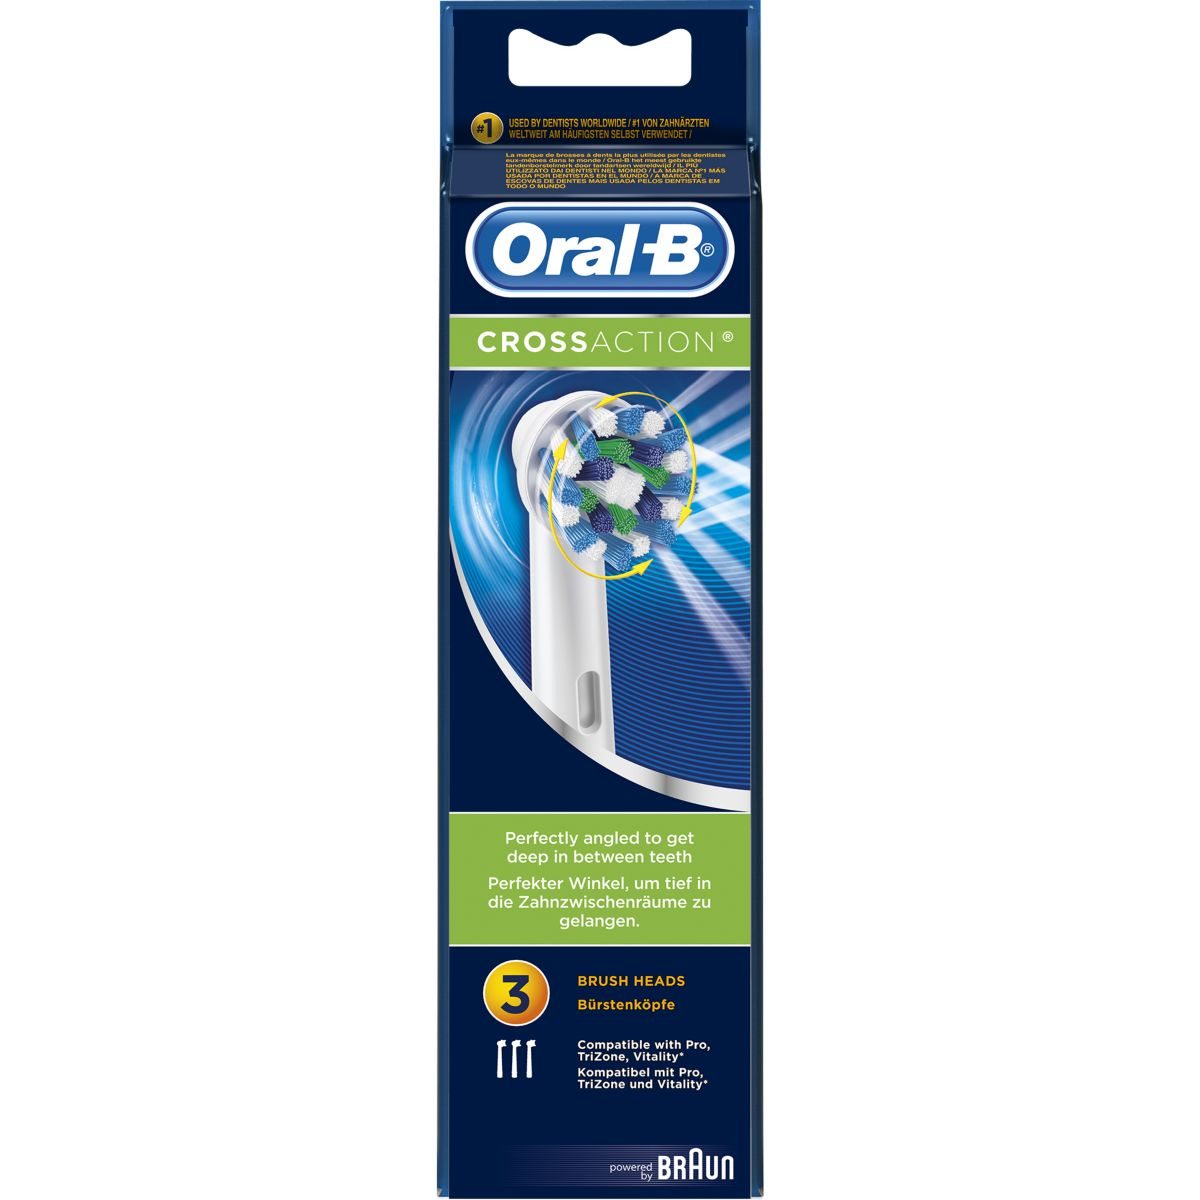 Brossette dentaire oral-b cross action x 3 - livraison offerte : code liv (photo)